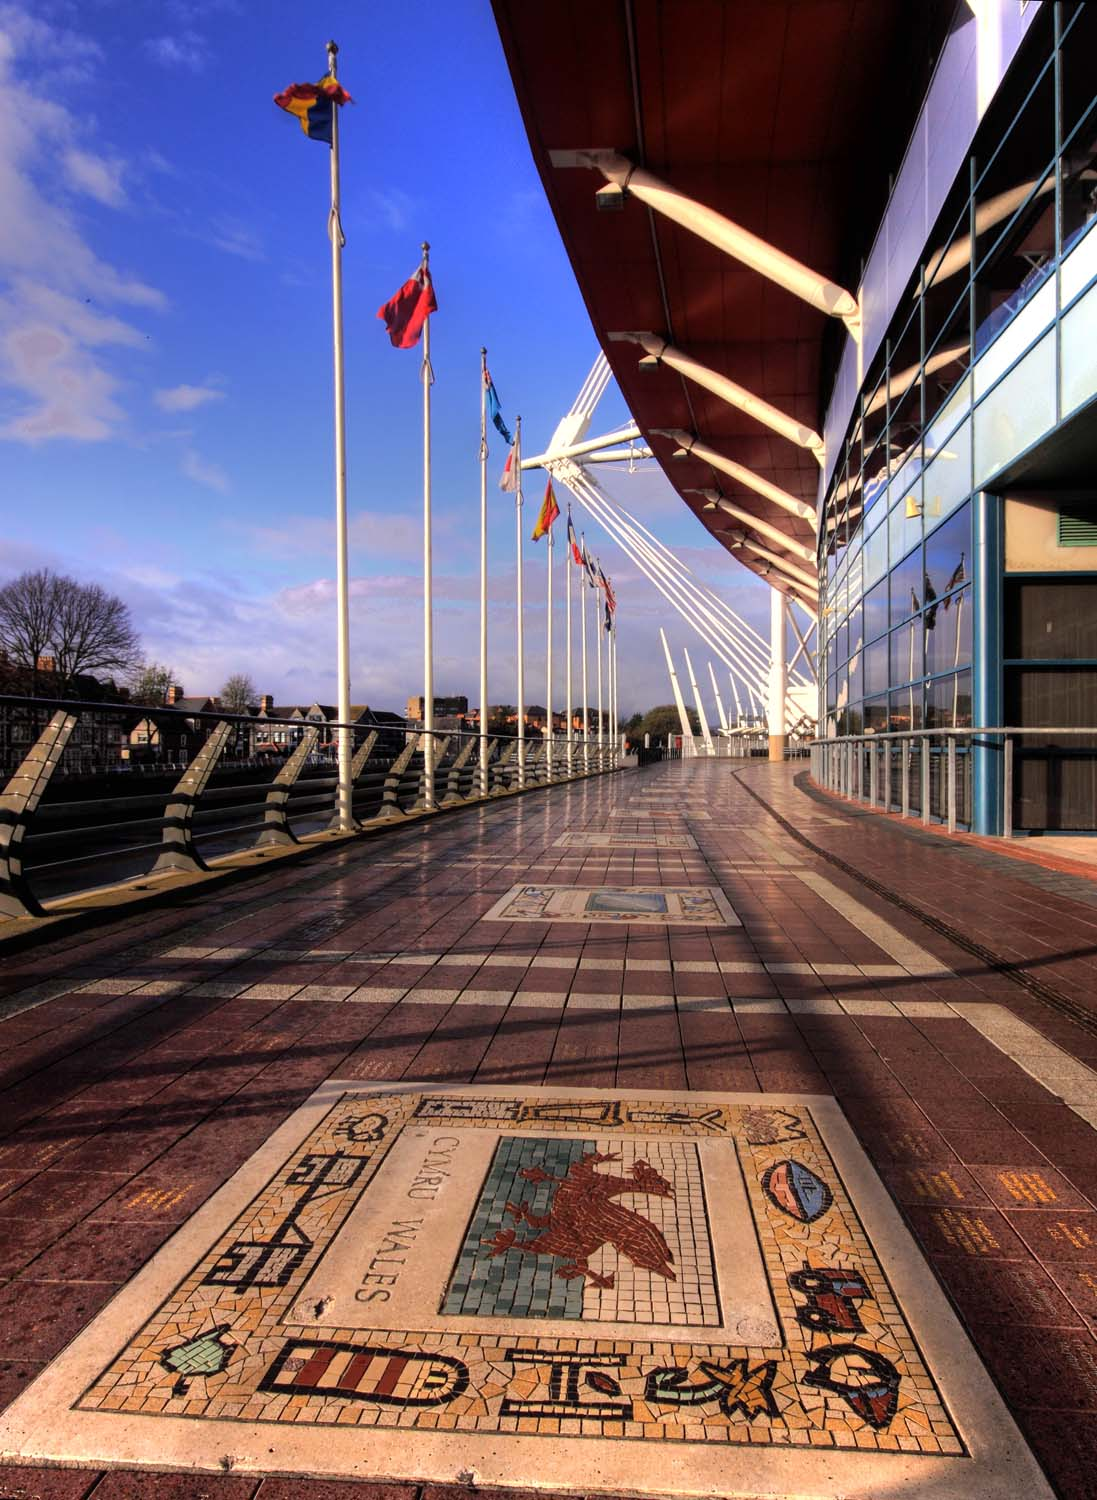 Cardif,Cardiff,rugby,stadium,2000,Millenium,pitch,capital,city,national,flags,waterfront,blue,sky,HotpixOrgUK,365days,building,architecture,sport,wales,welsh,UK,GB,britain,cymru,gymru,stadia,sign,art,country,HDR,high dynamic range,wide,superwide,sporting,action,play,players,staidum,tonysmith,tony,smith,interesting,place,places,sigma,wide angle lens,buildings,built,hotpix!,#tonysmithhotpix